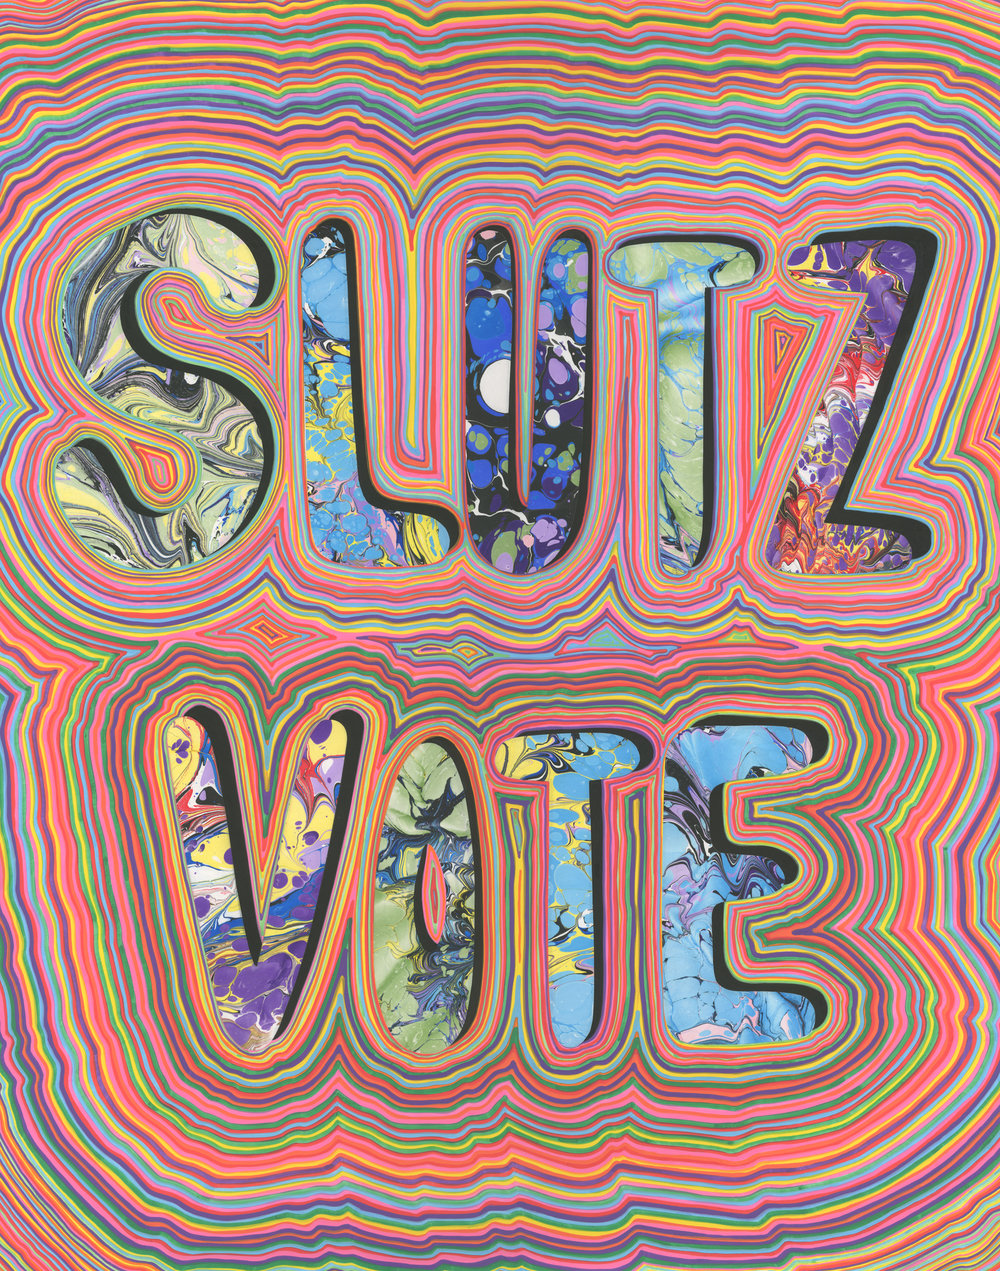 Slutz Vote (2017), marbled paper and acrylic paint pen on paper, 19 x 24 inches